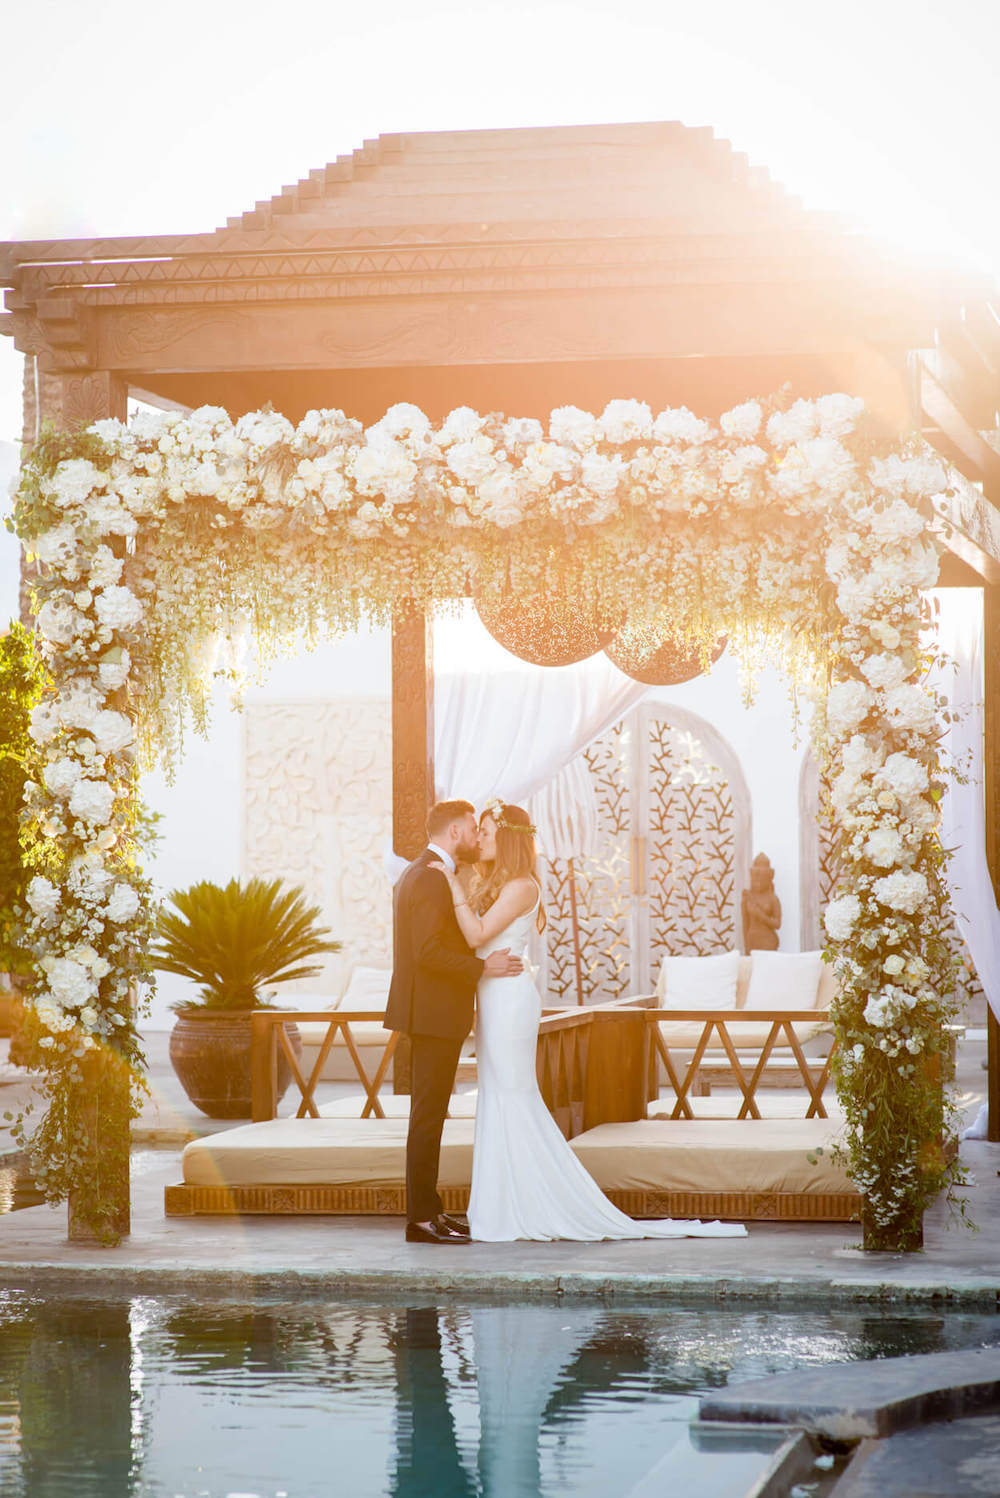 flower arch bride groom kiss sunset